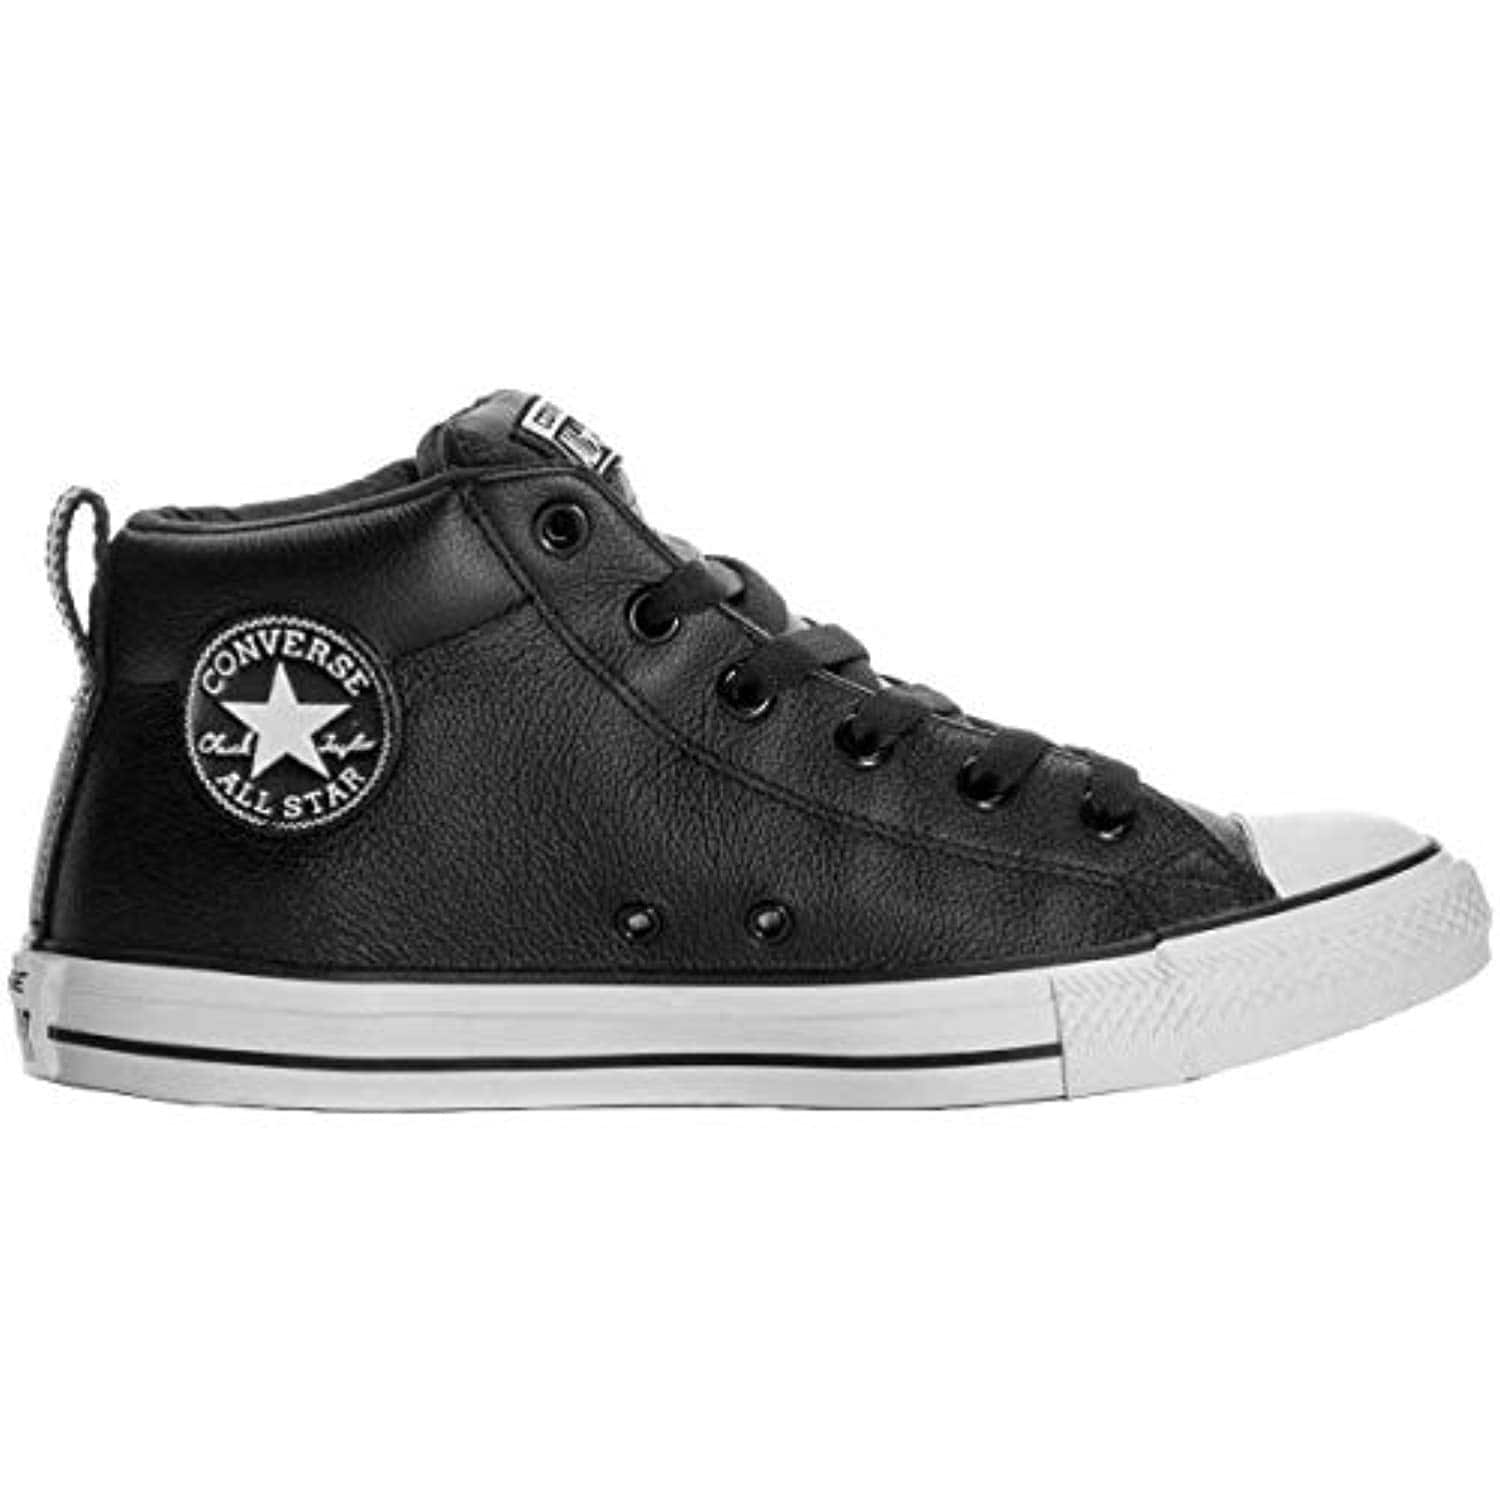 Star Street Mid Shoes Leather